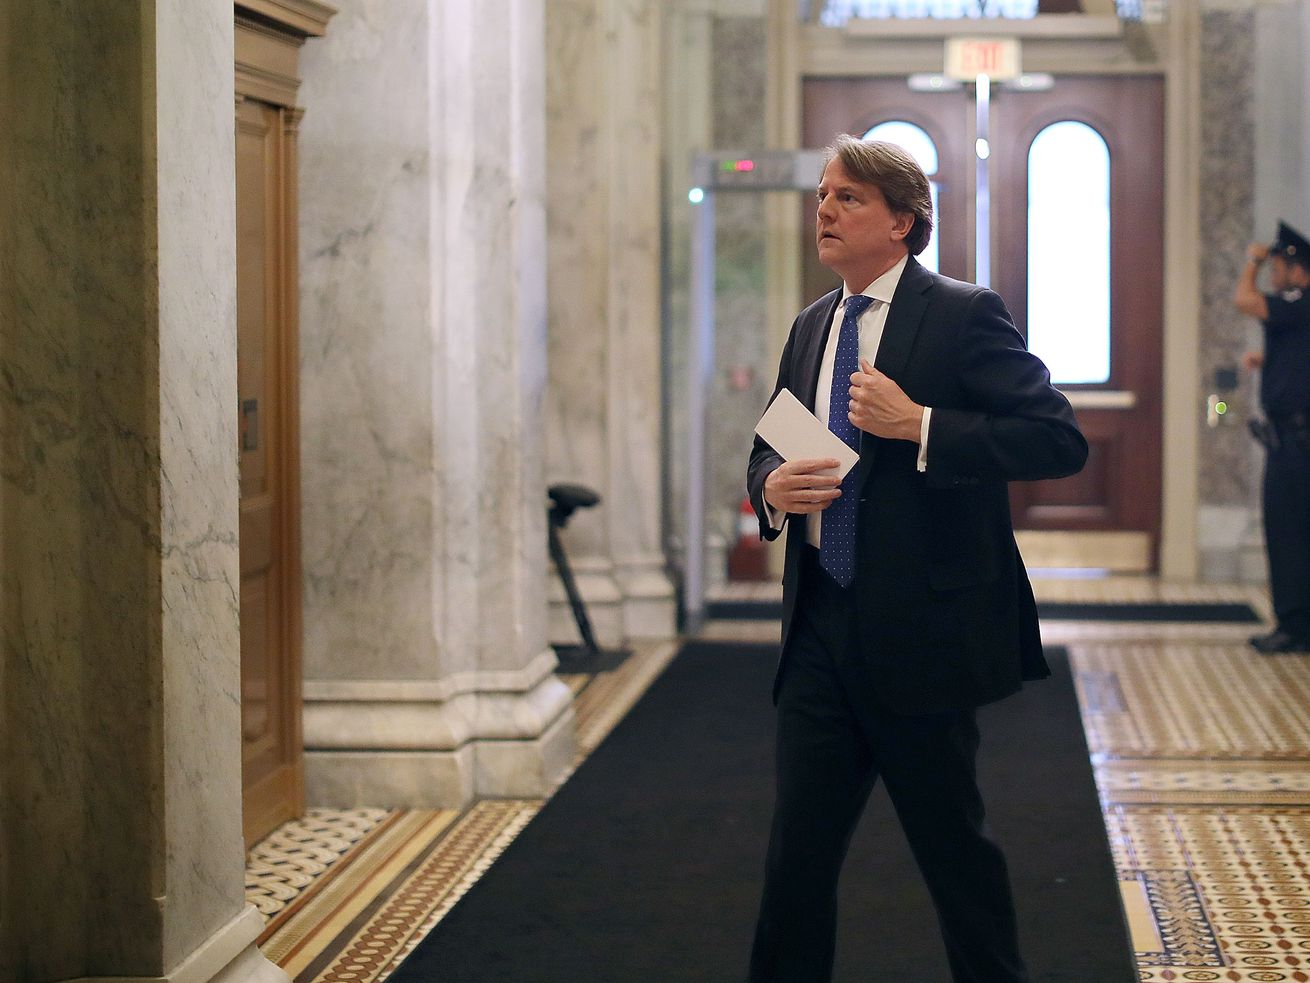 White House counsel Don McGahn after a meeting in Washington, DC in July 2018. He's reportedly speaking at length with Robert Mueller out of concern he's the fall guy for Trump.